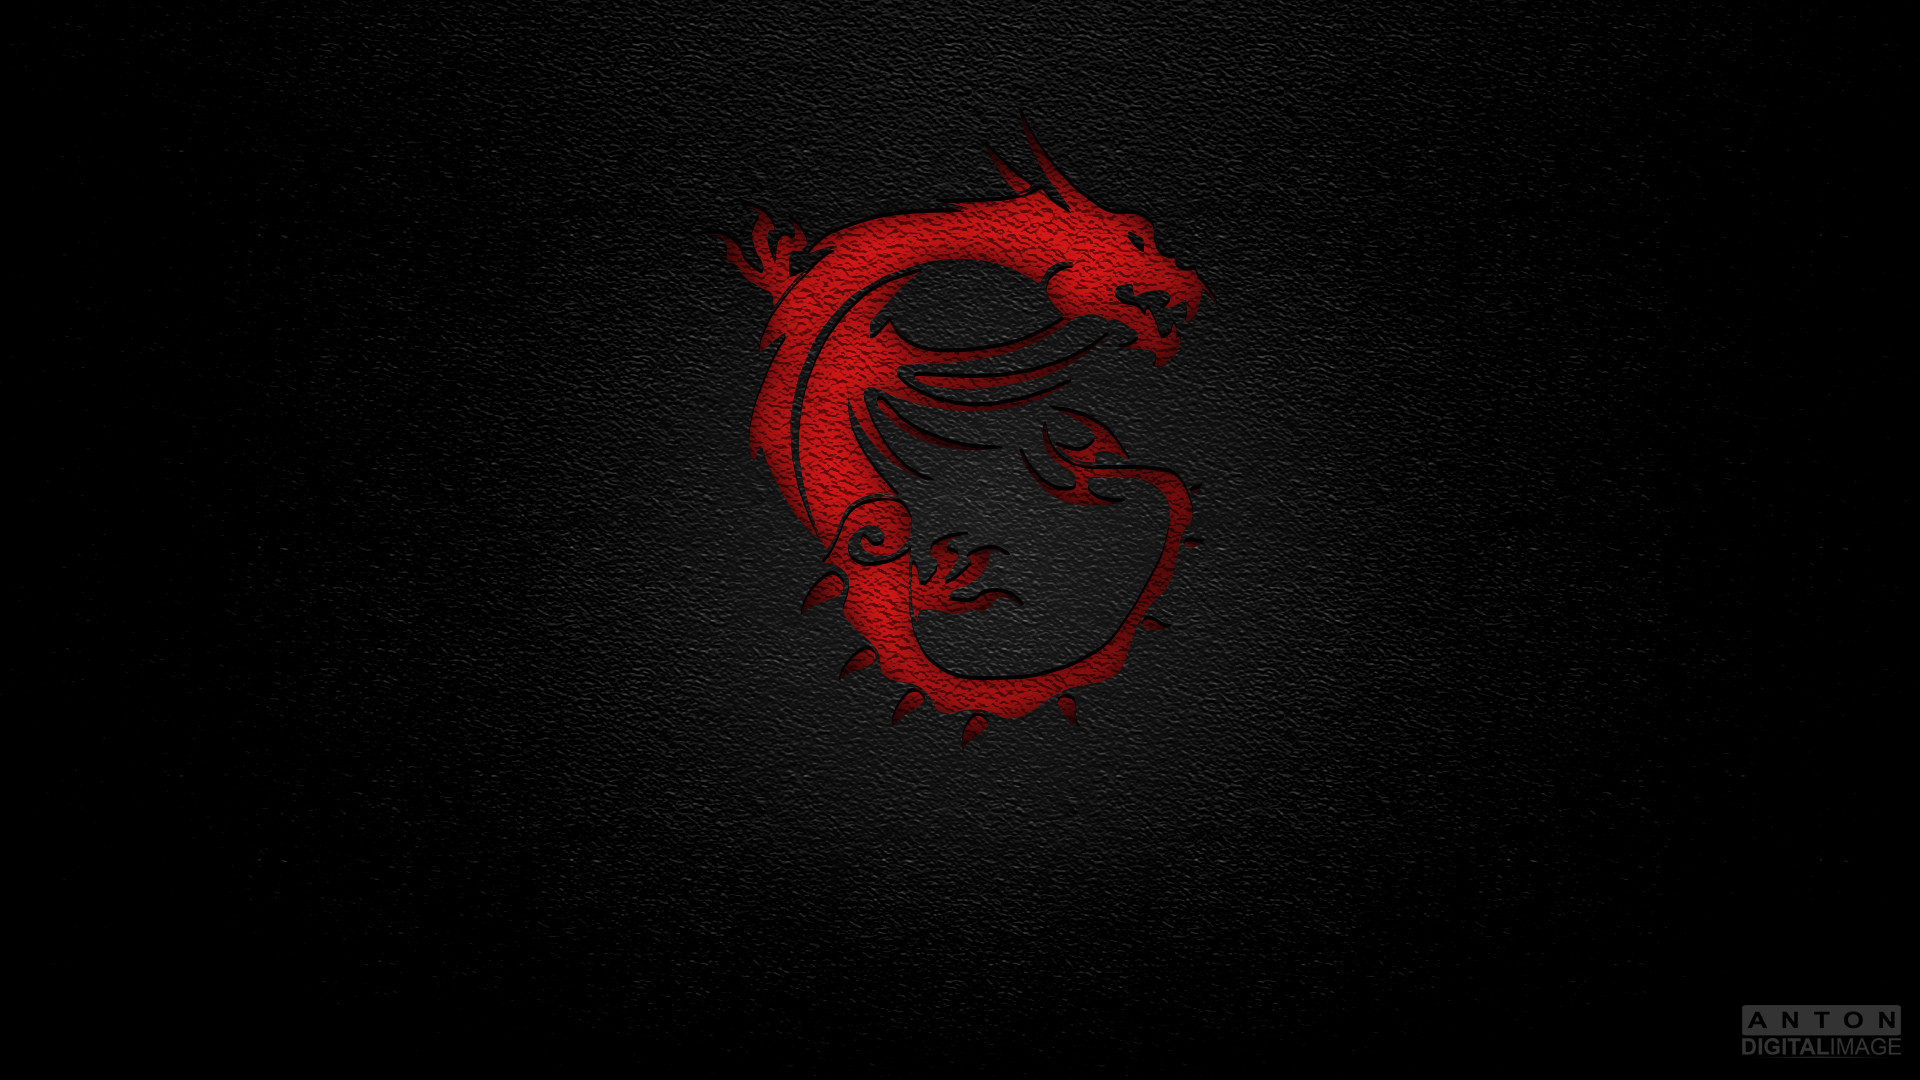 1920x1080 MSI Dragon Gaming Series Wallpaper 1080p by Thony32 on DeviantArt